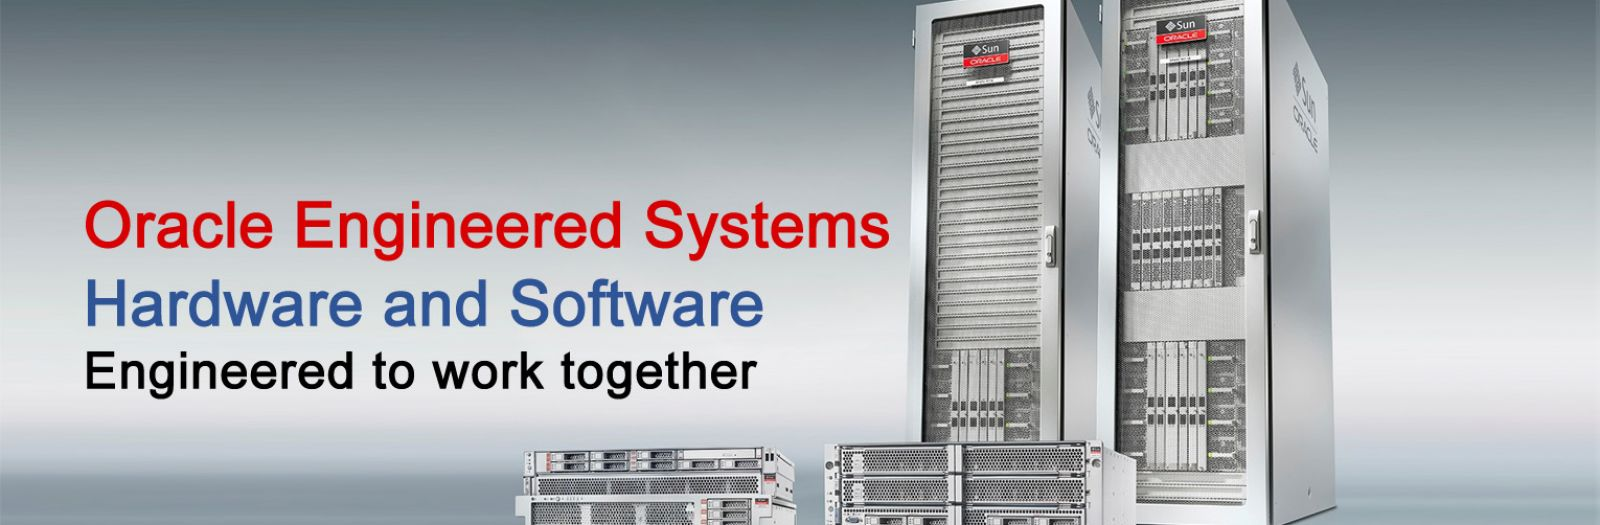 Oracle engineered systems banner.